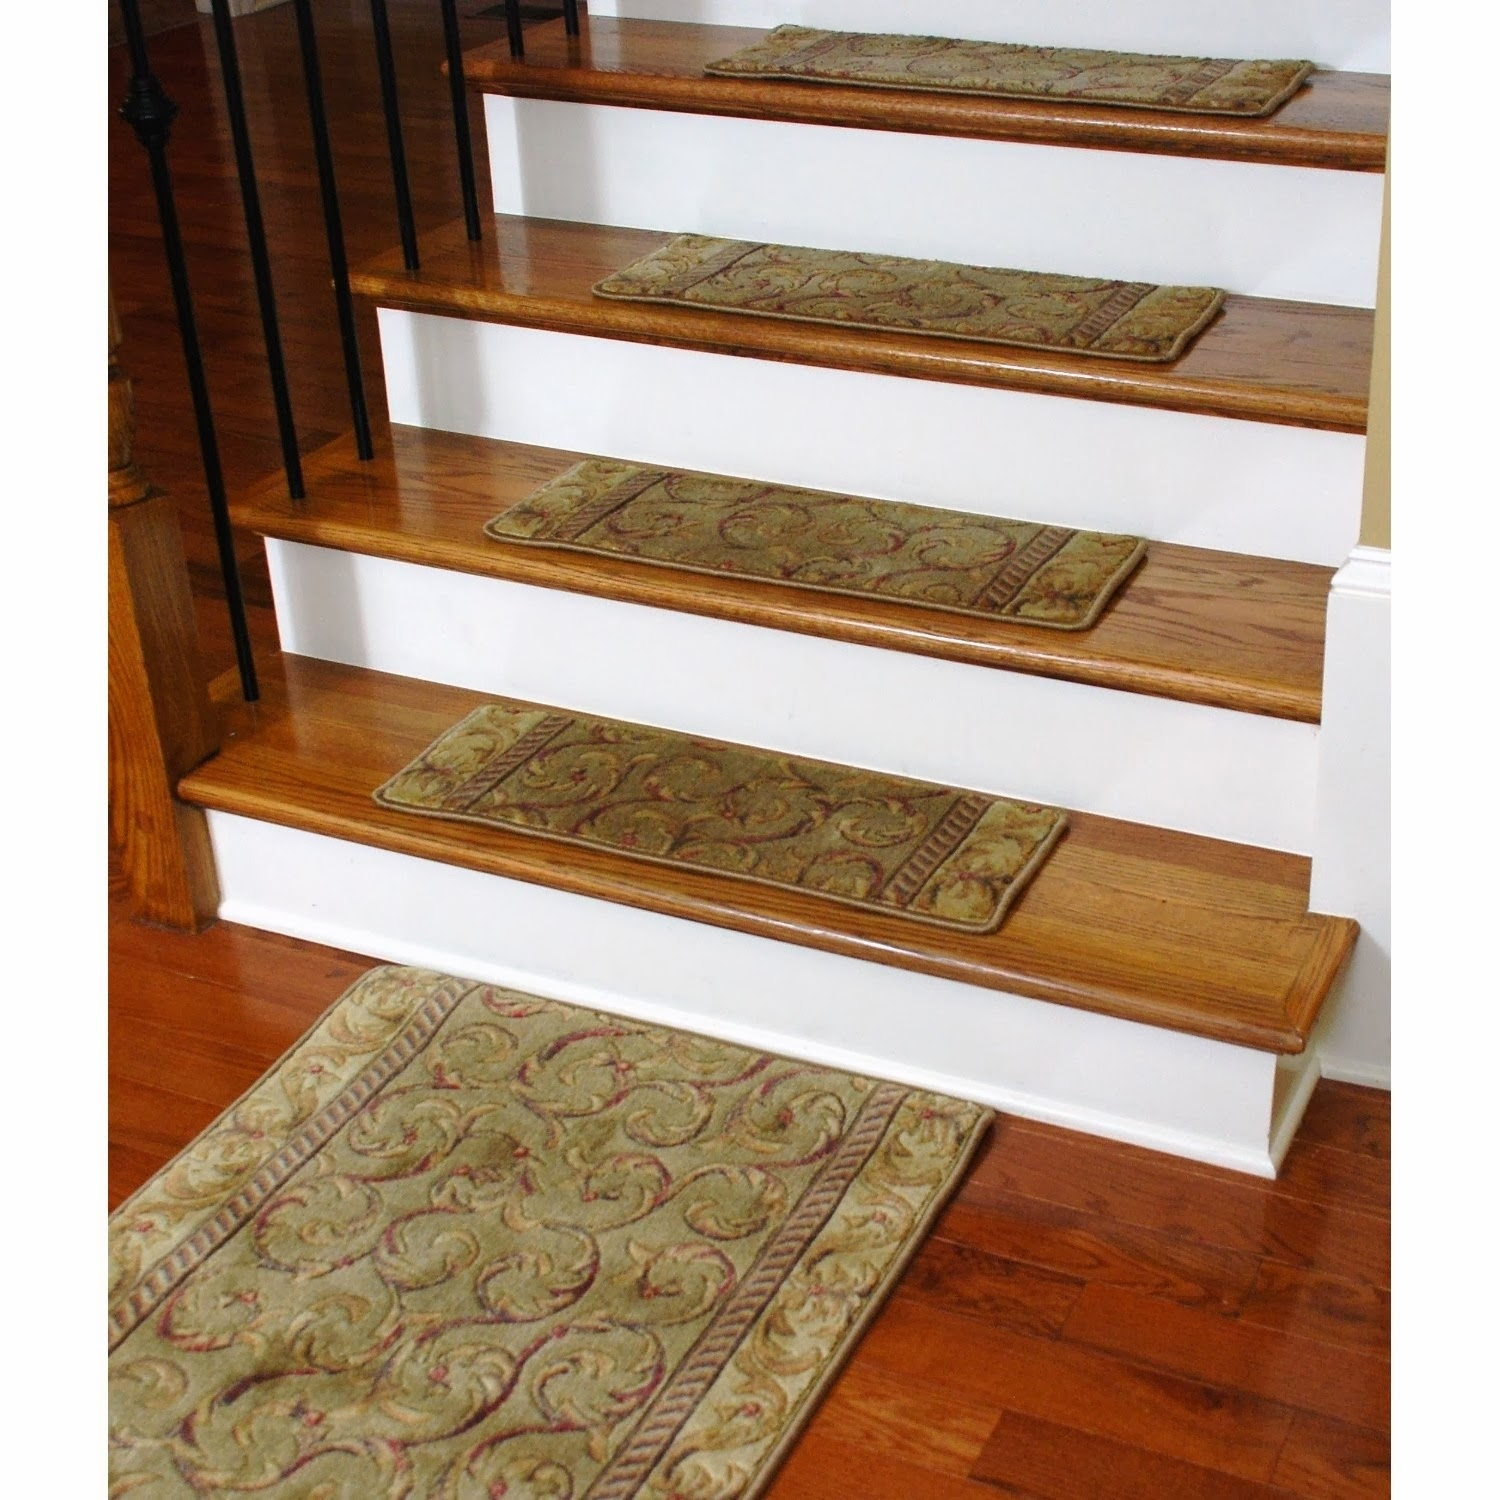 Compact Stair Tread Rugs Contemporary 30 Stair Tread Rugs Pertaining To Small Stair Tread Rugs (View 3 of 15)